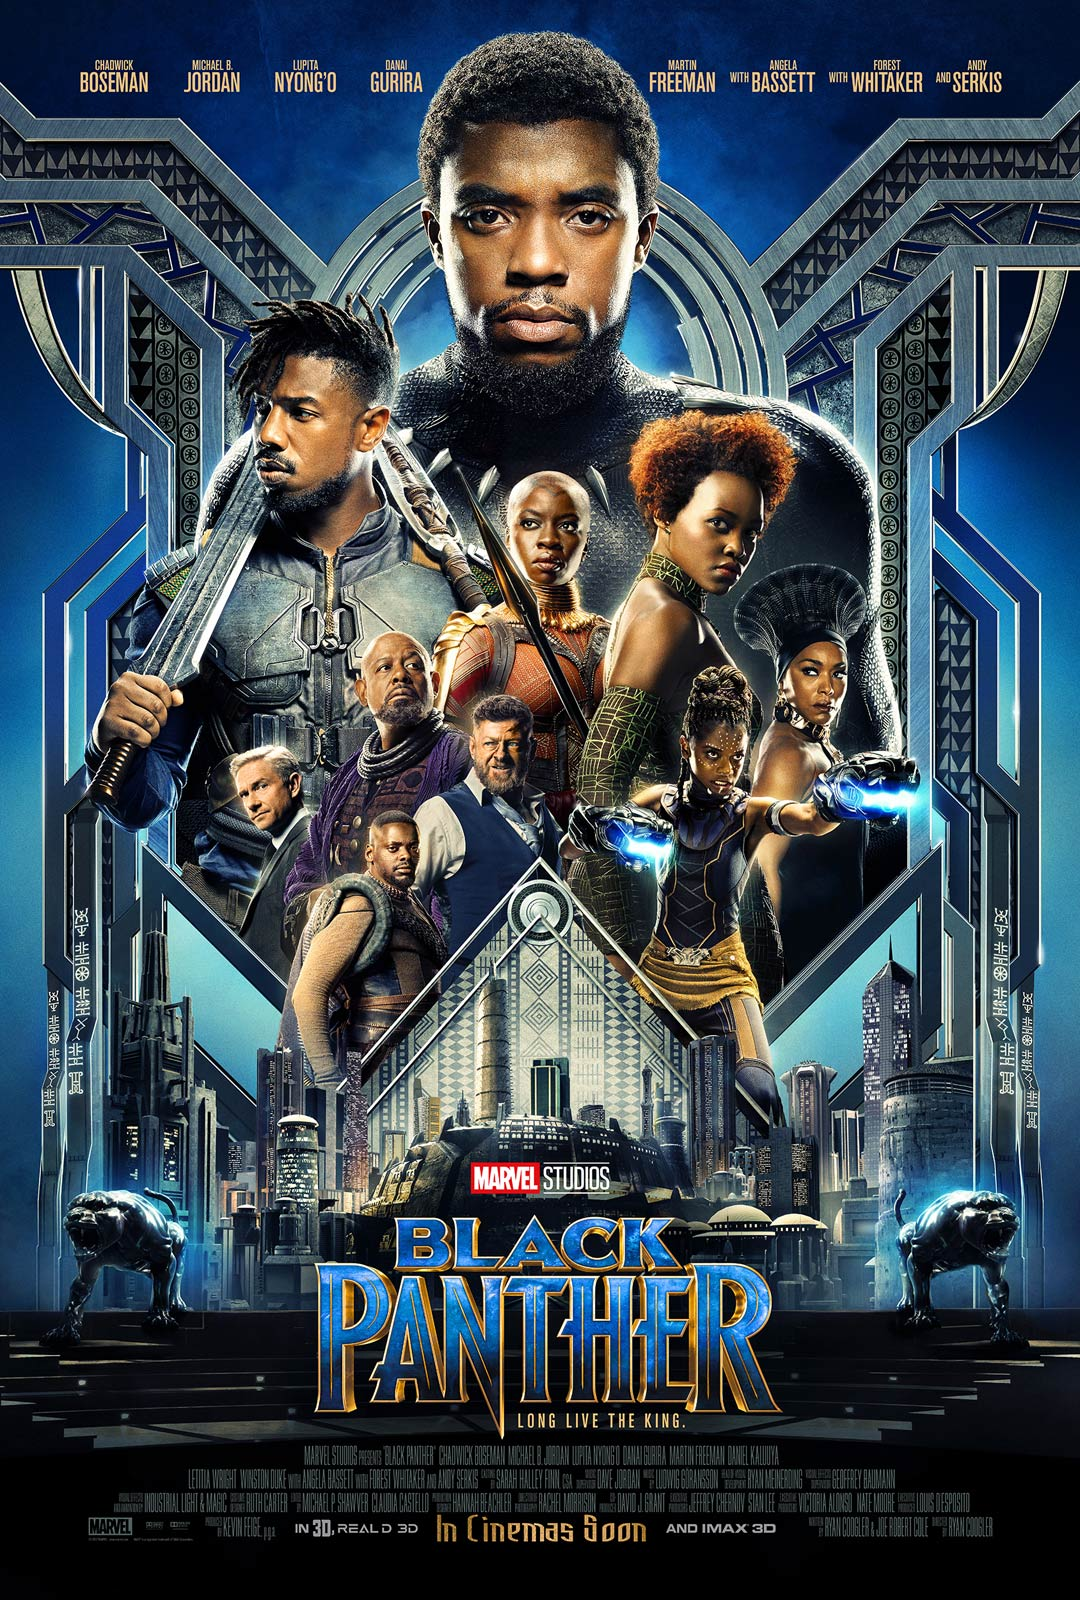 Image du film Black Panther